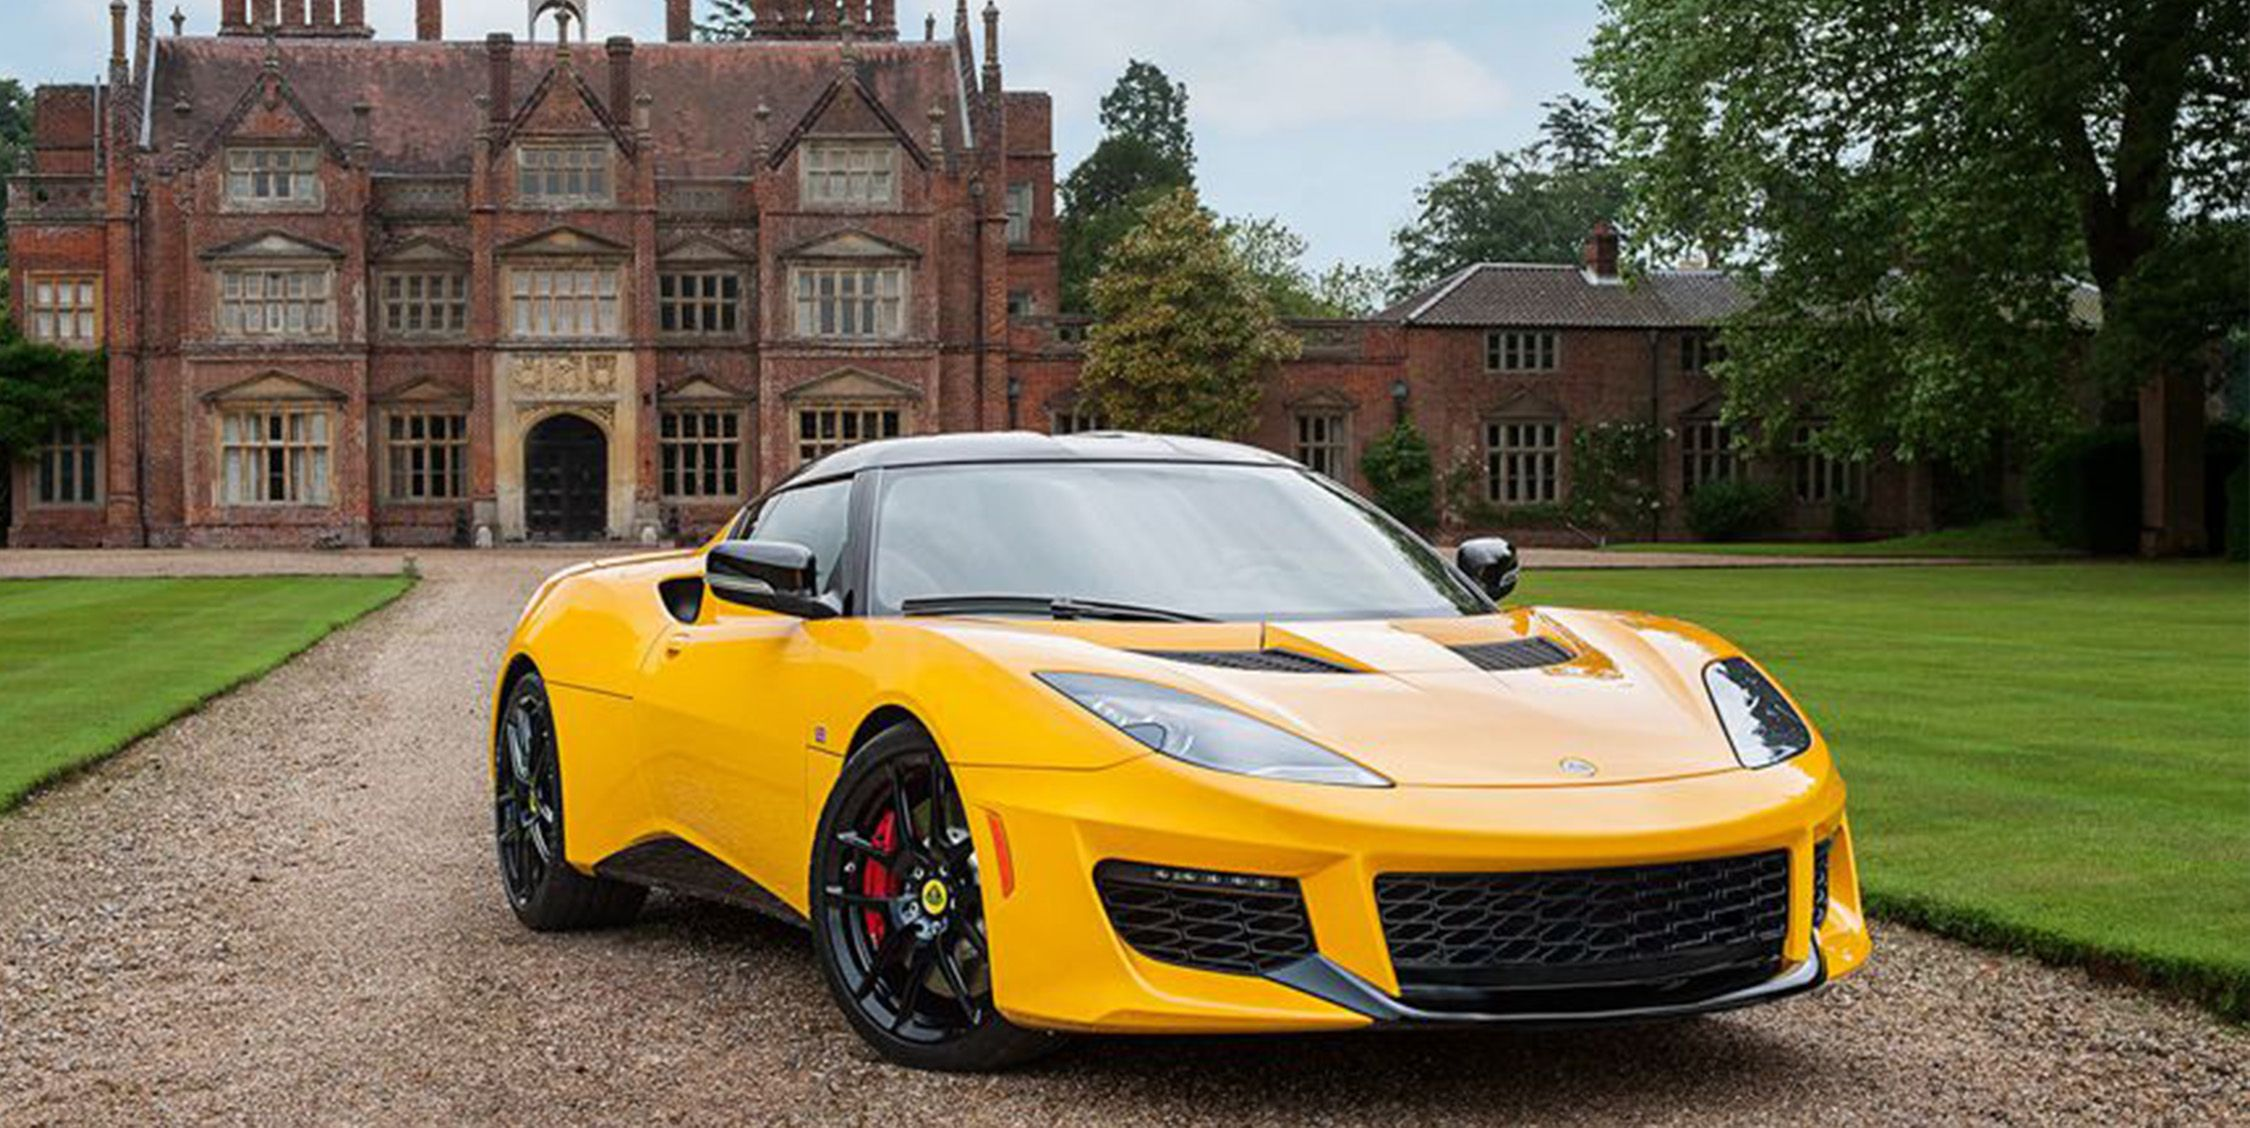 Lotus Cars Boss Confirms There's Life in the Esteemed Brand Yet